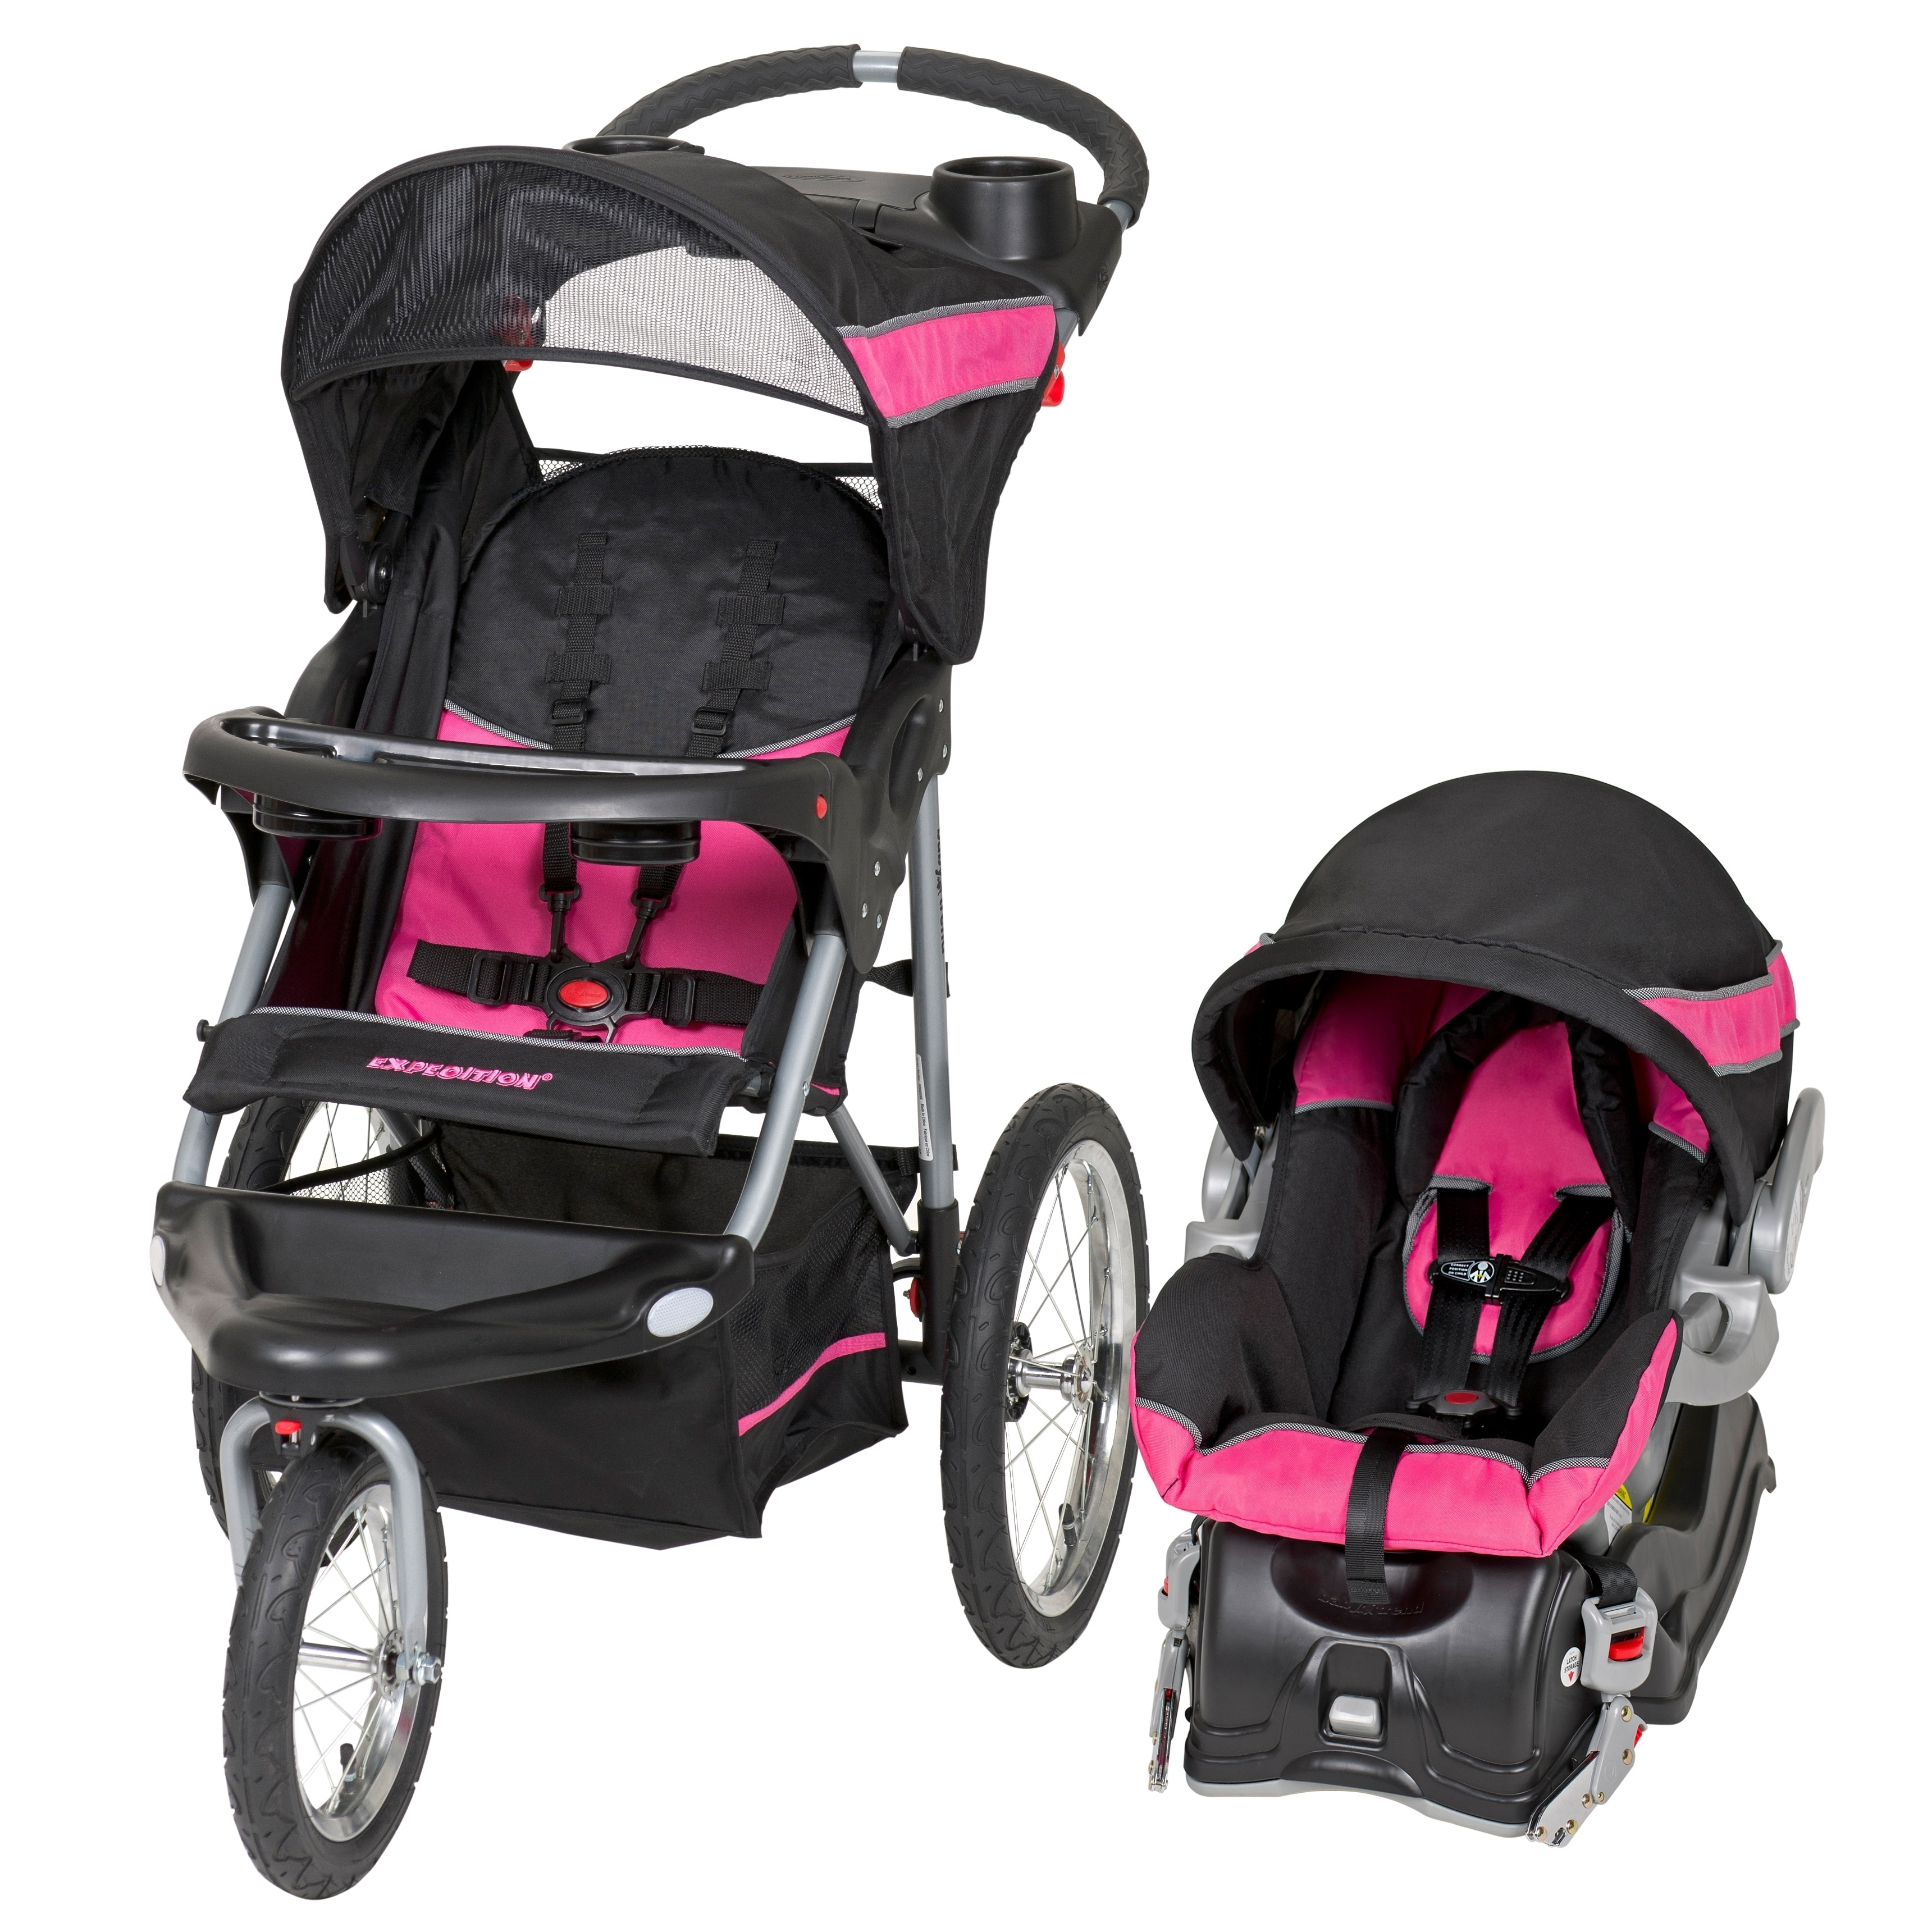 New Baby Trend Expedition Jogger Travel System Jogging Stroller Car Seat Set